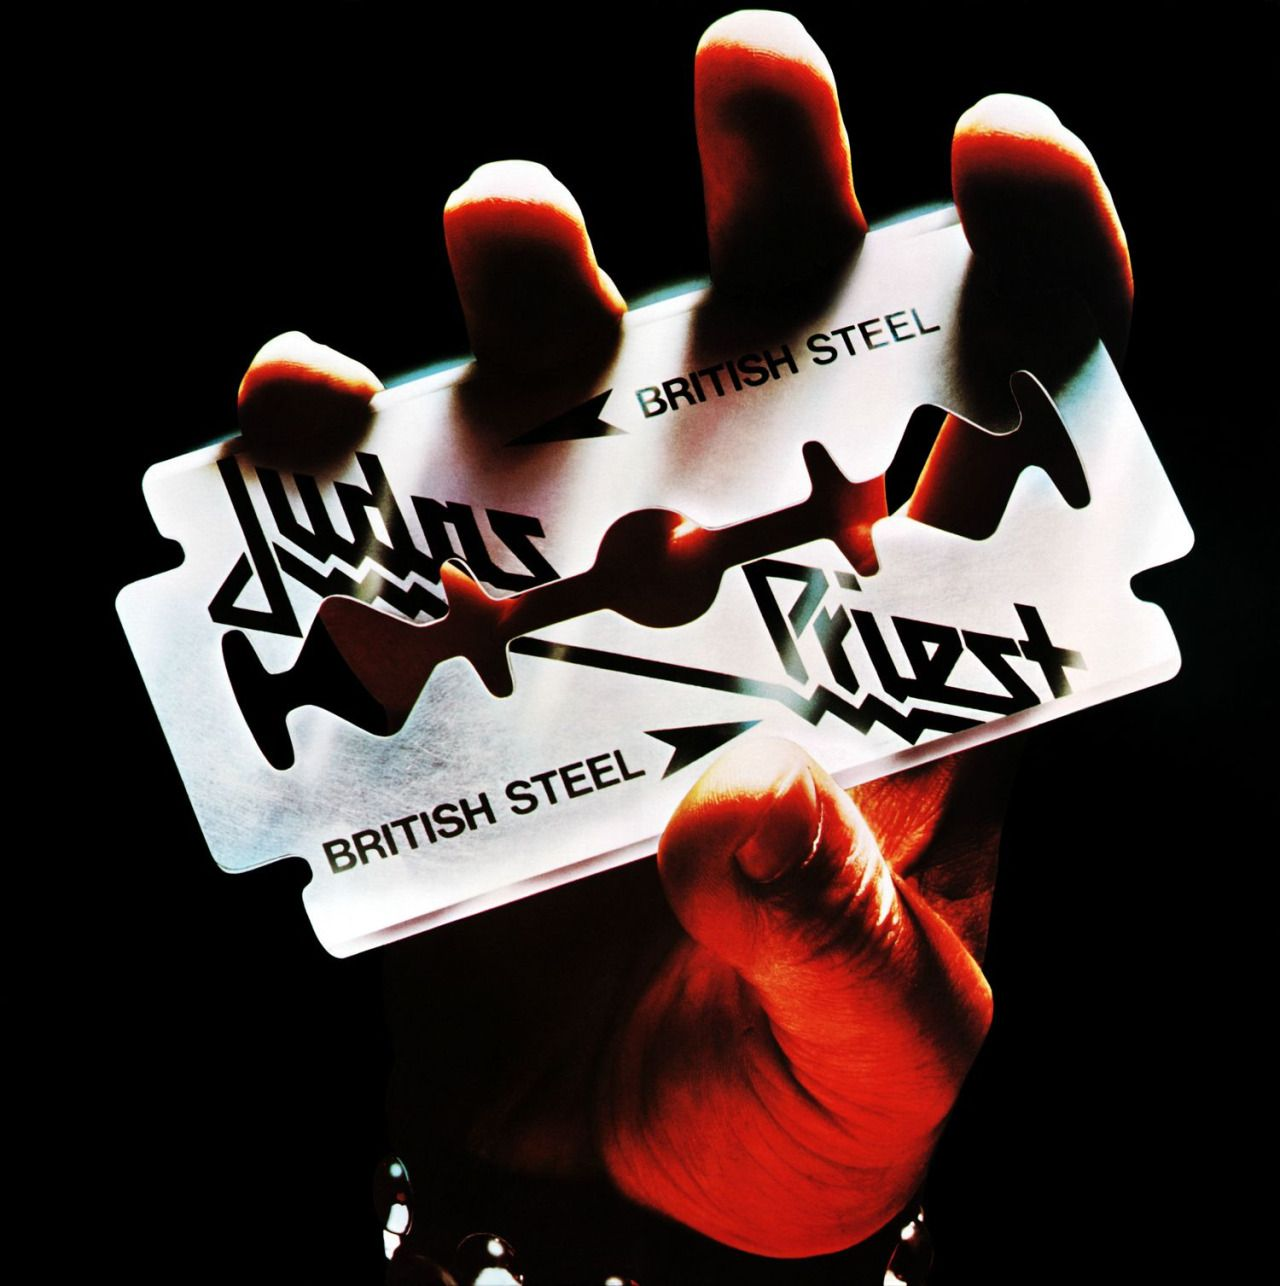 My Favorite Judas Priest Album Cover British Steel – 1980